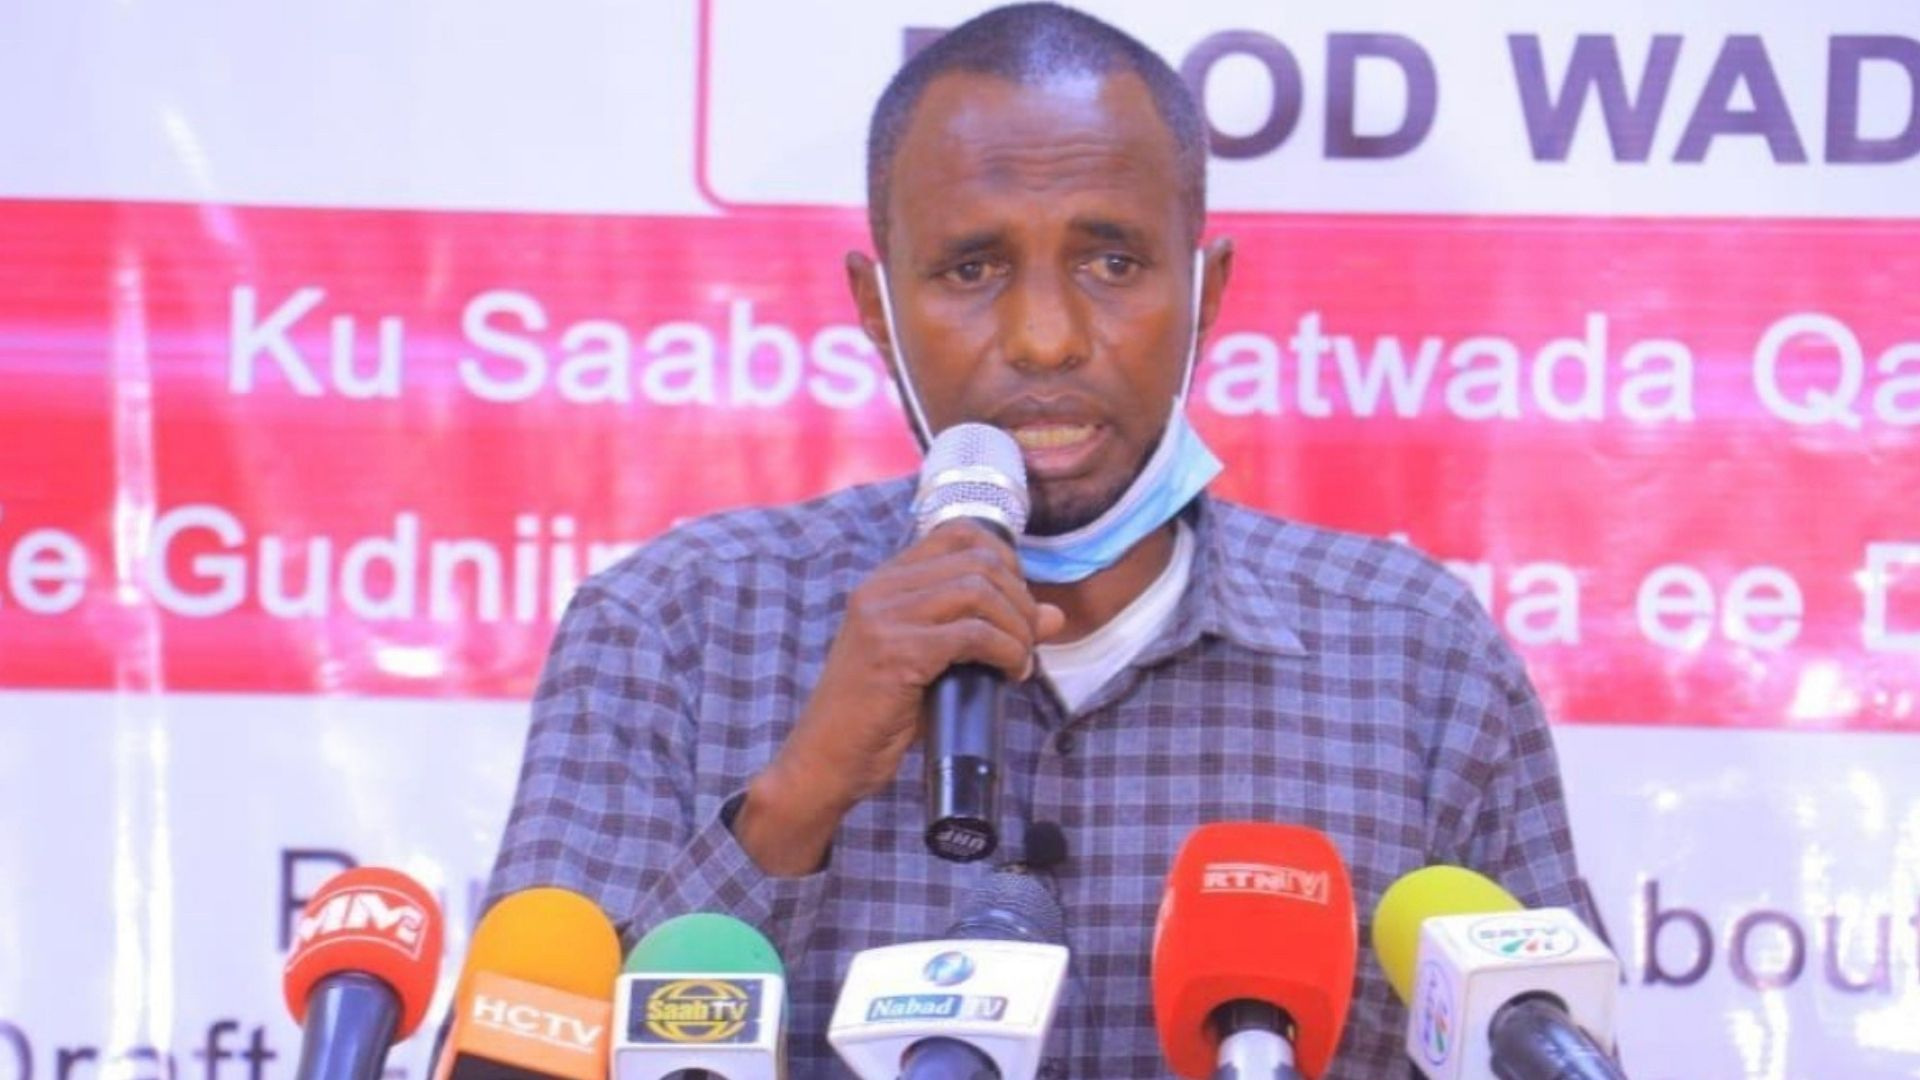 FGM is not part of our Religion – Islamic Leaders Speak Out in Ethiopia